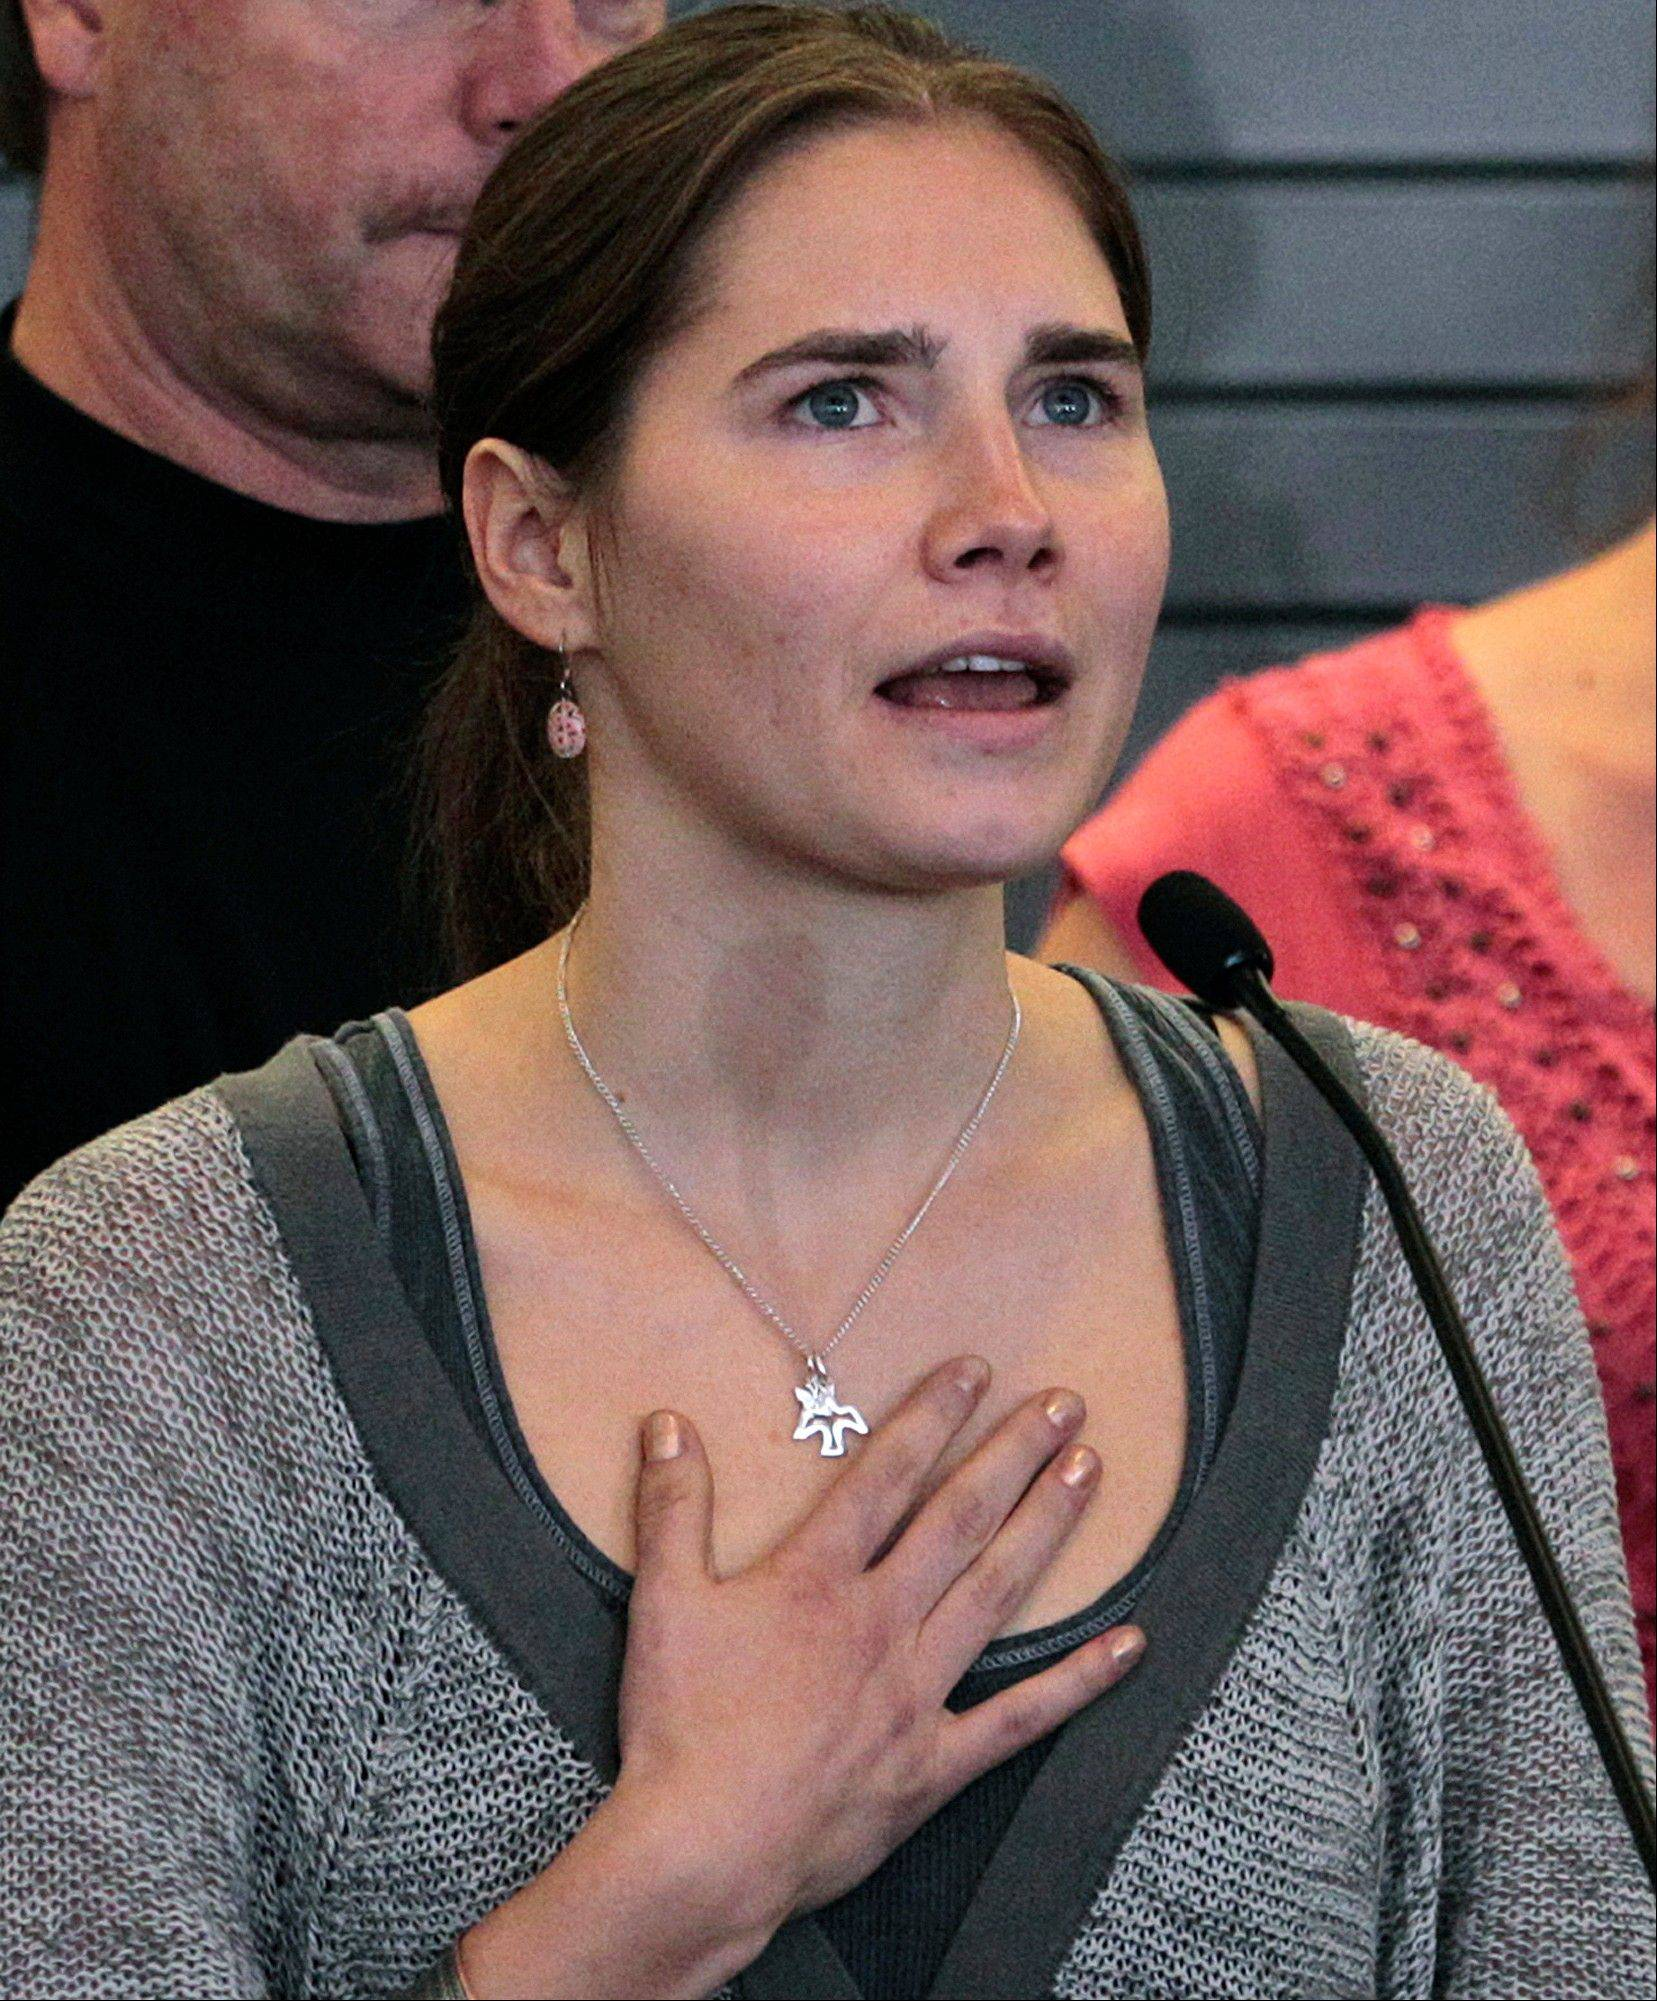 Amanda Knox declared her innocence in her roommate's 2007 murder in a highly unusual email Tuesday to the Italian court hearing the case against her. The former U.S. exchange student also said she was staying away from the trial out of fear of being wrongly convicted.